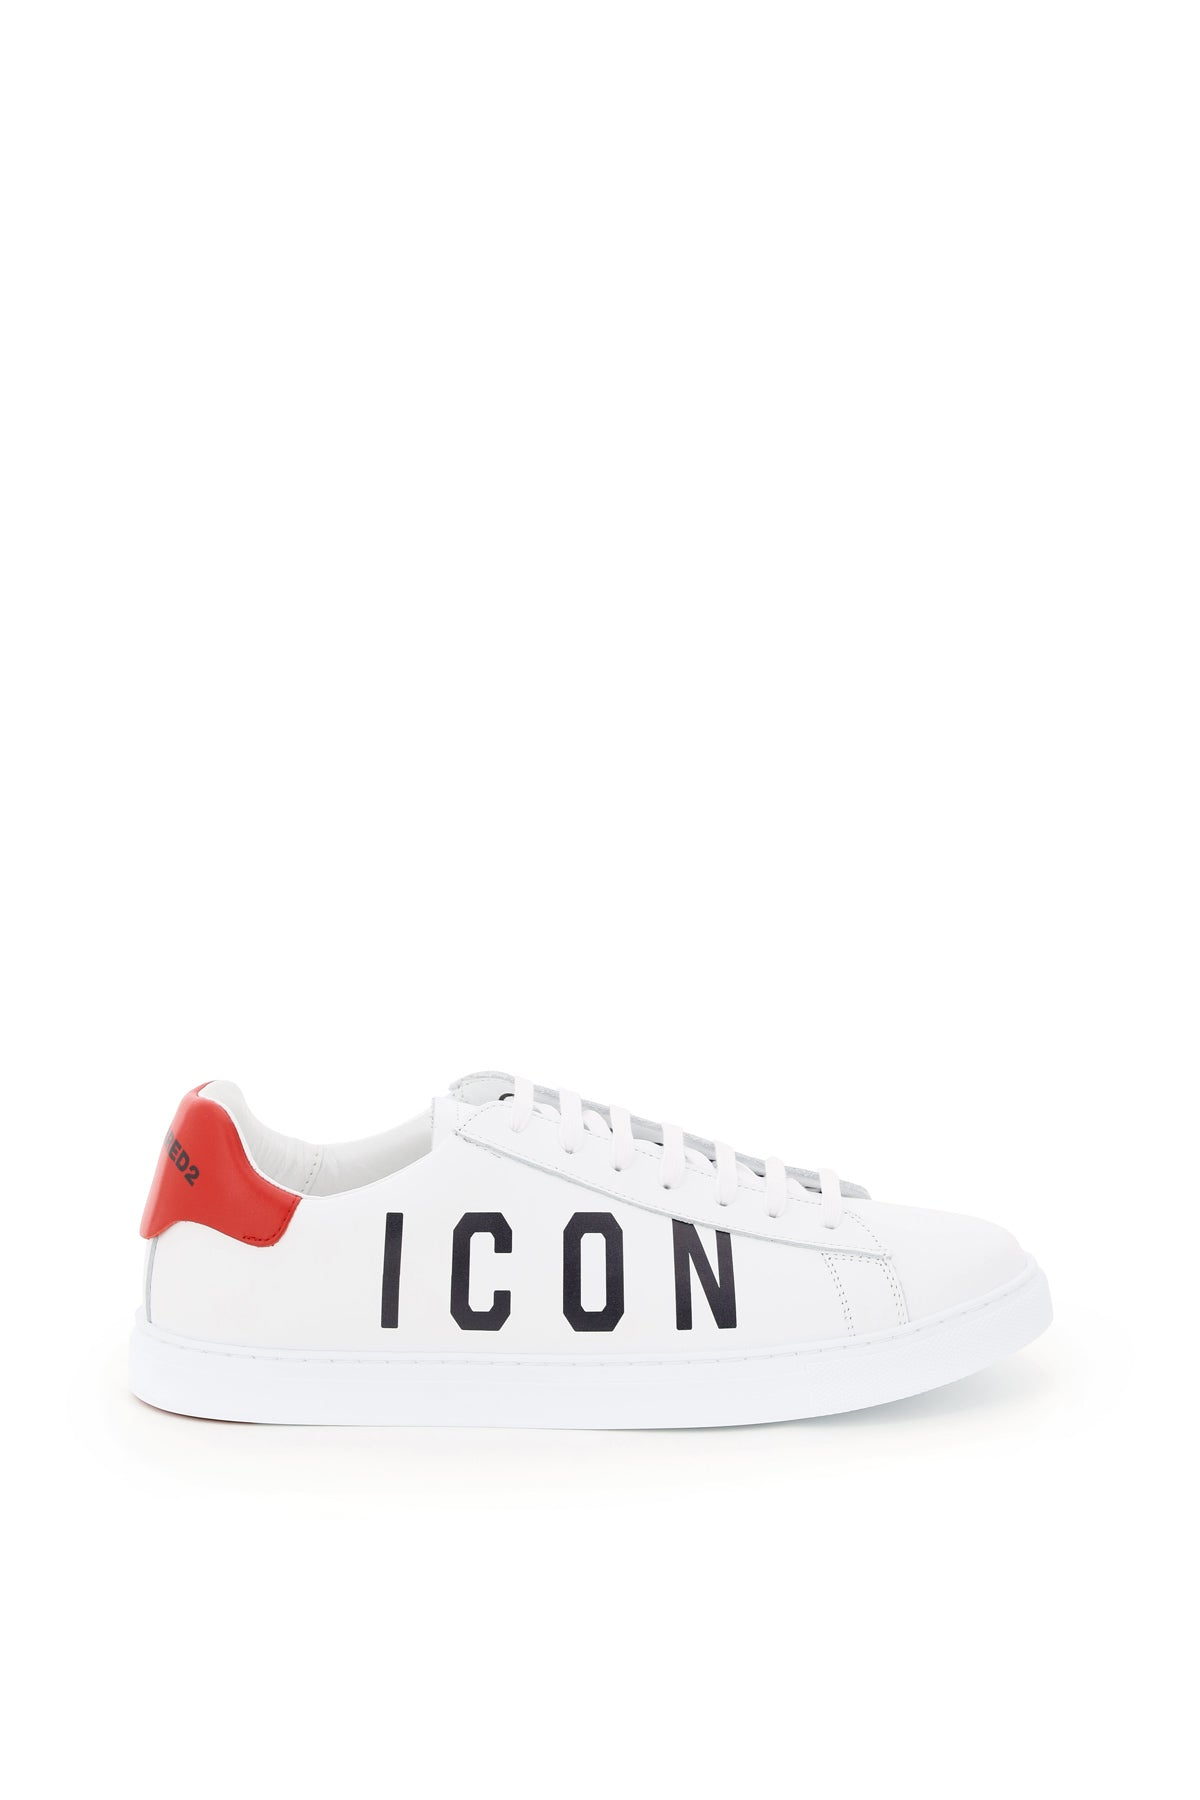 Dsquared2 Leathers DSQUARED2 ICON PRINT LOW